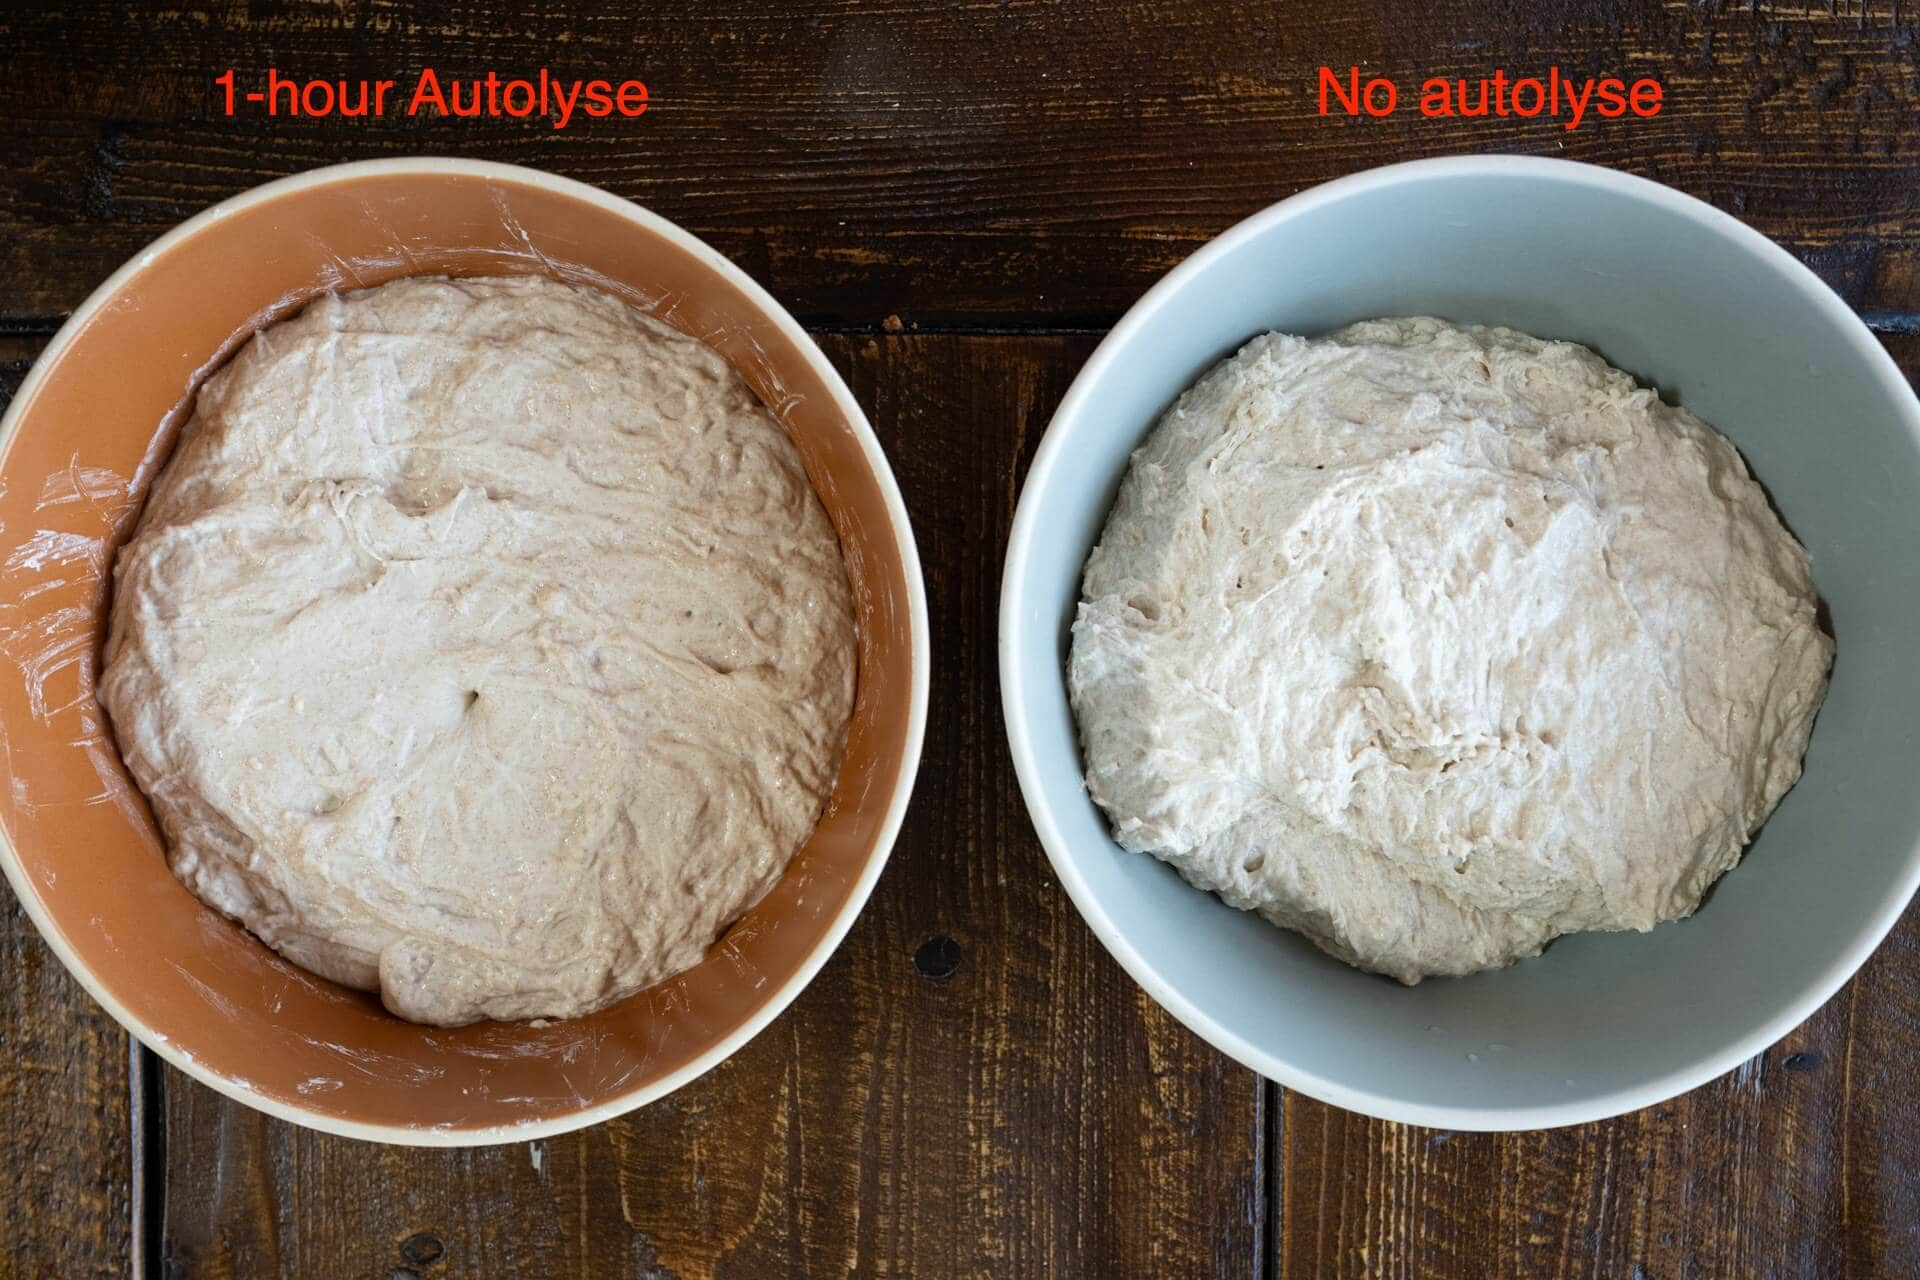 How to autolyse test bake